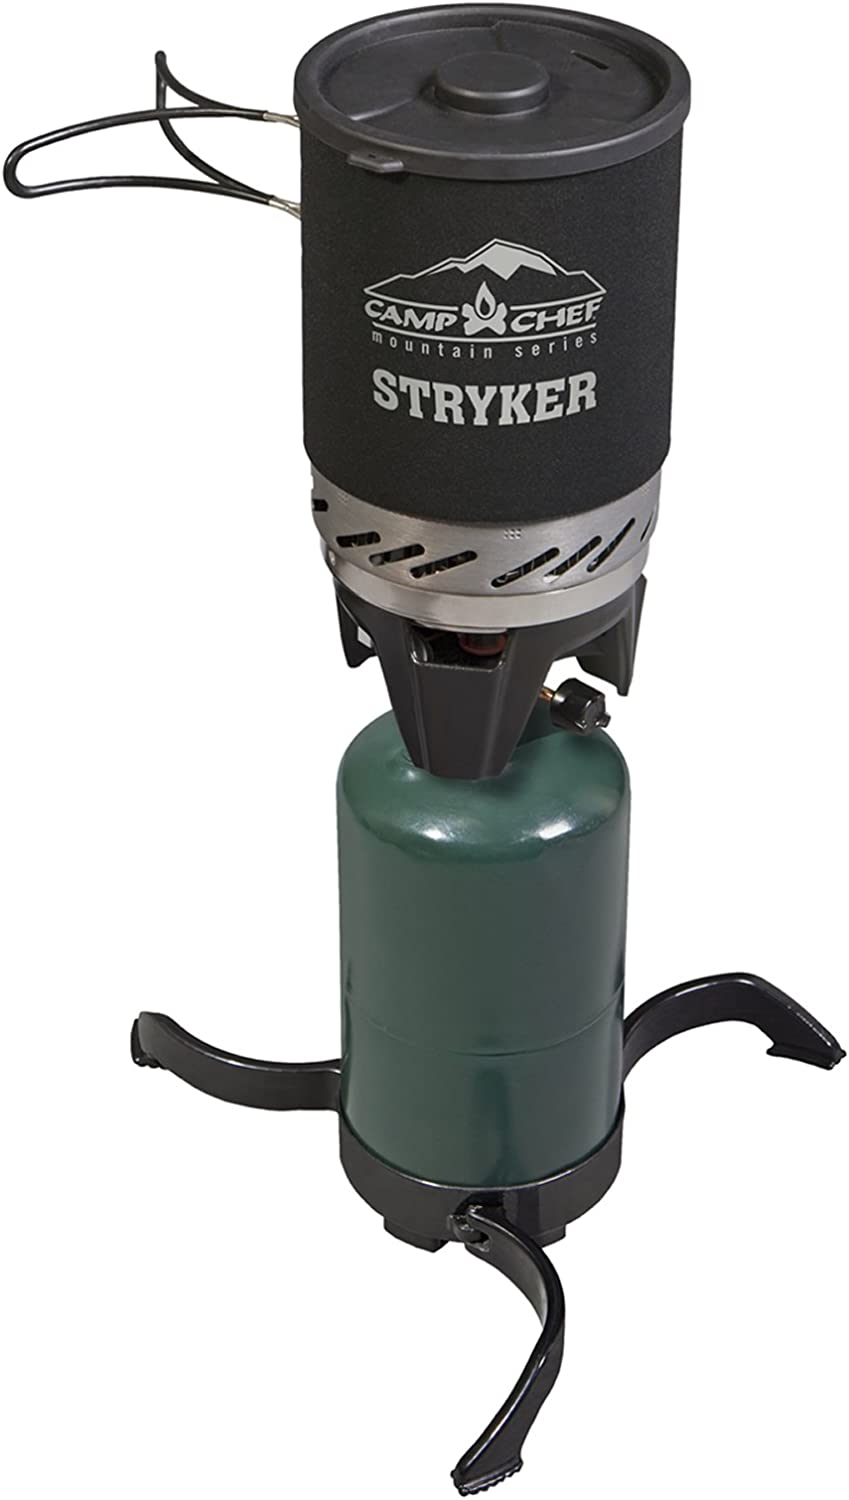 Camp Chef Mountain Series Stryker 150 Propane Stove